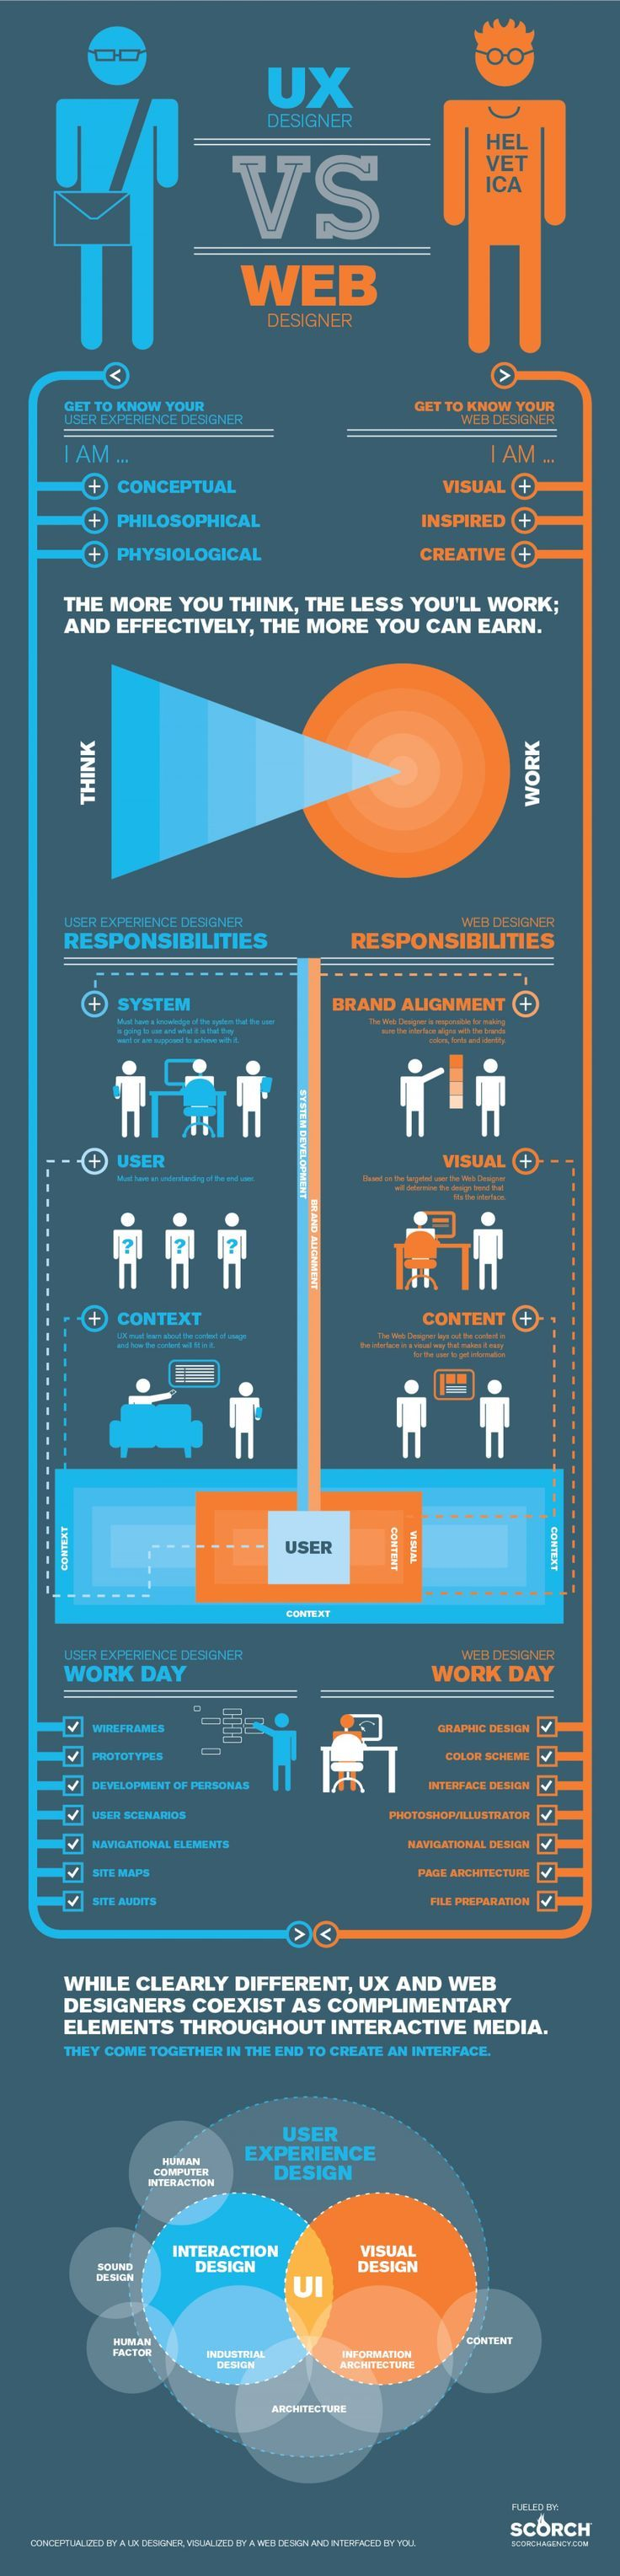 UX Designers vs Web Designers - What are some of the basic differences between a UX Designer and a Web Designer.. If you like UX, design, or design thinking, check out theuxblog.com #userexperience